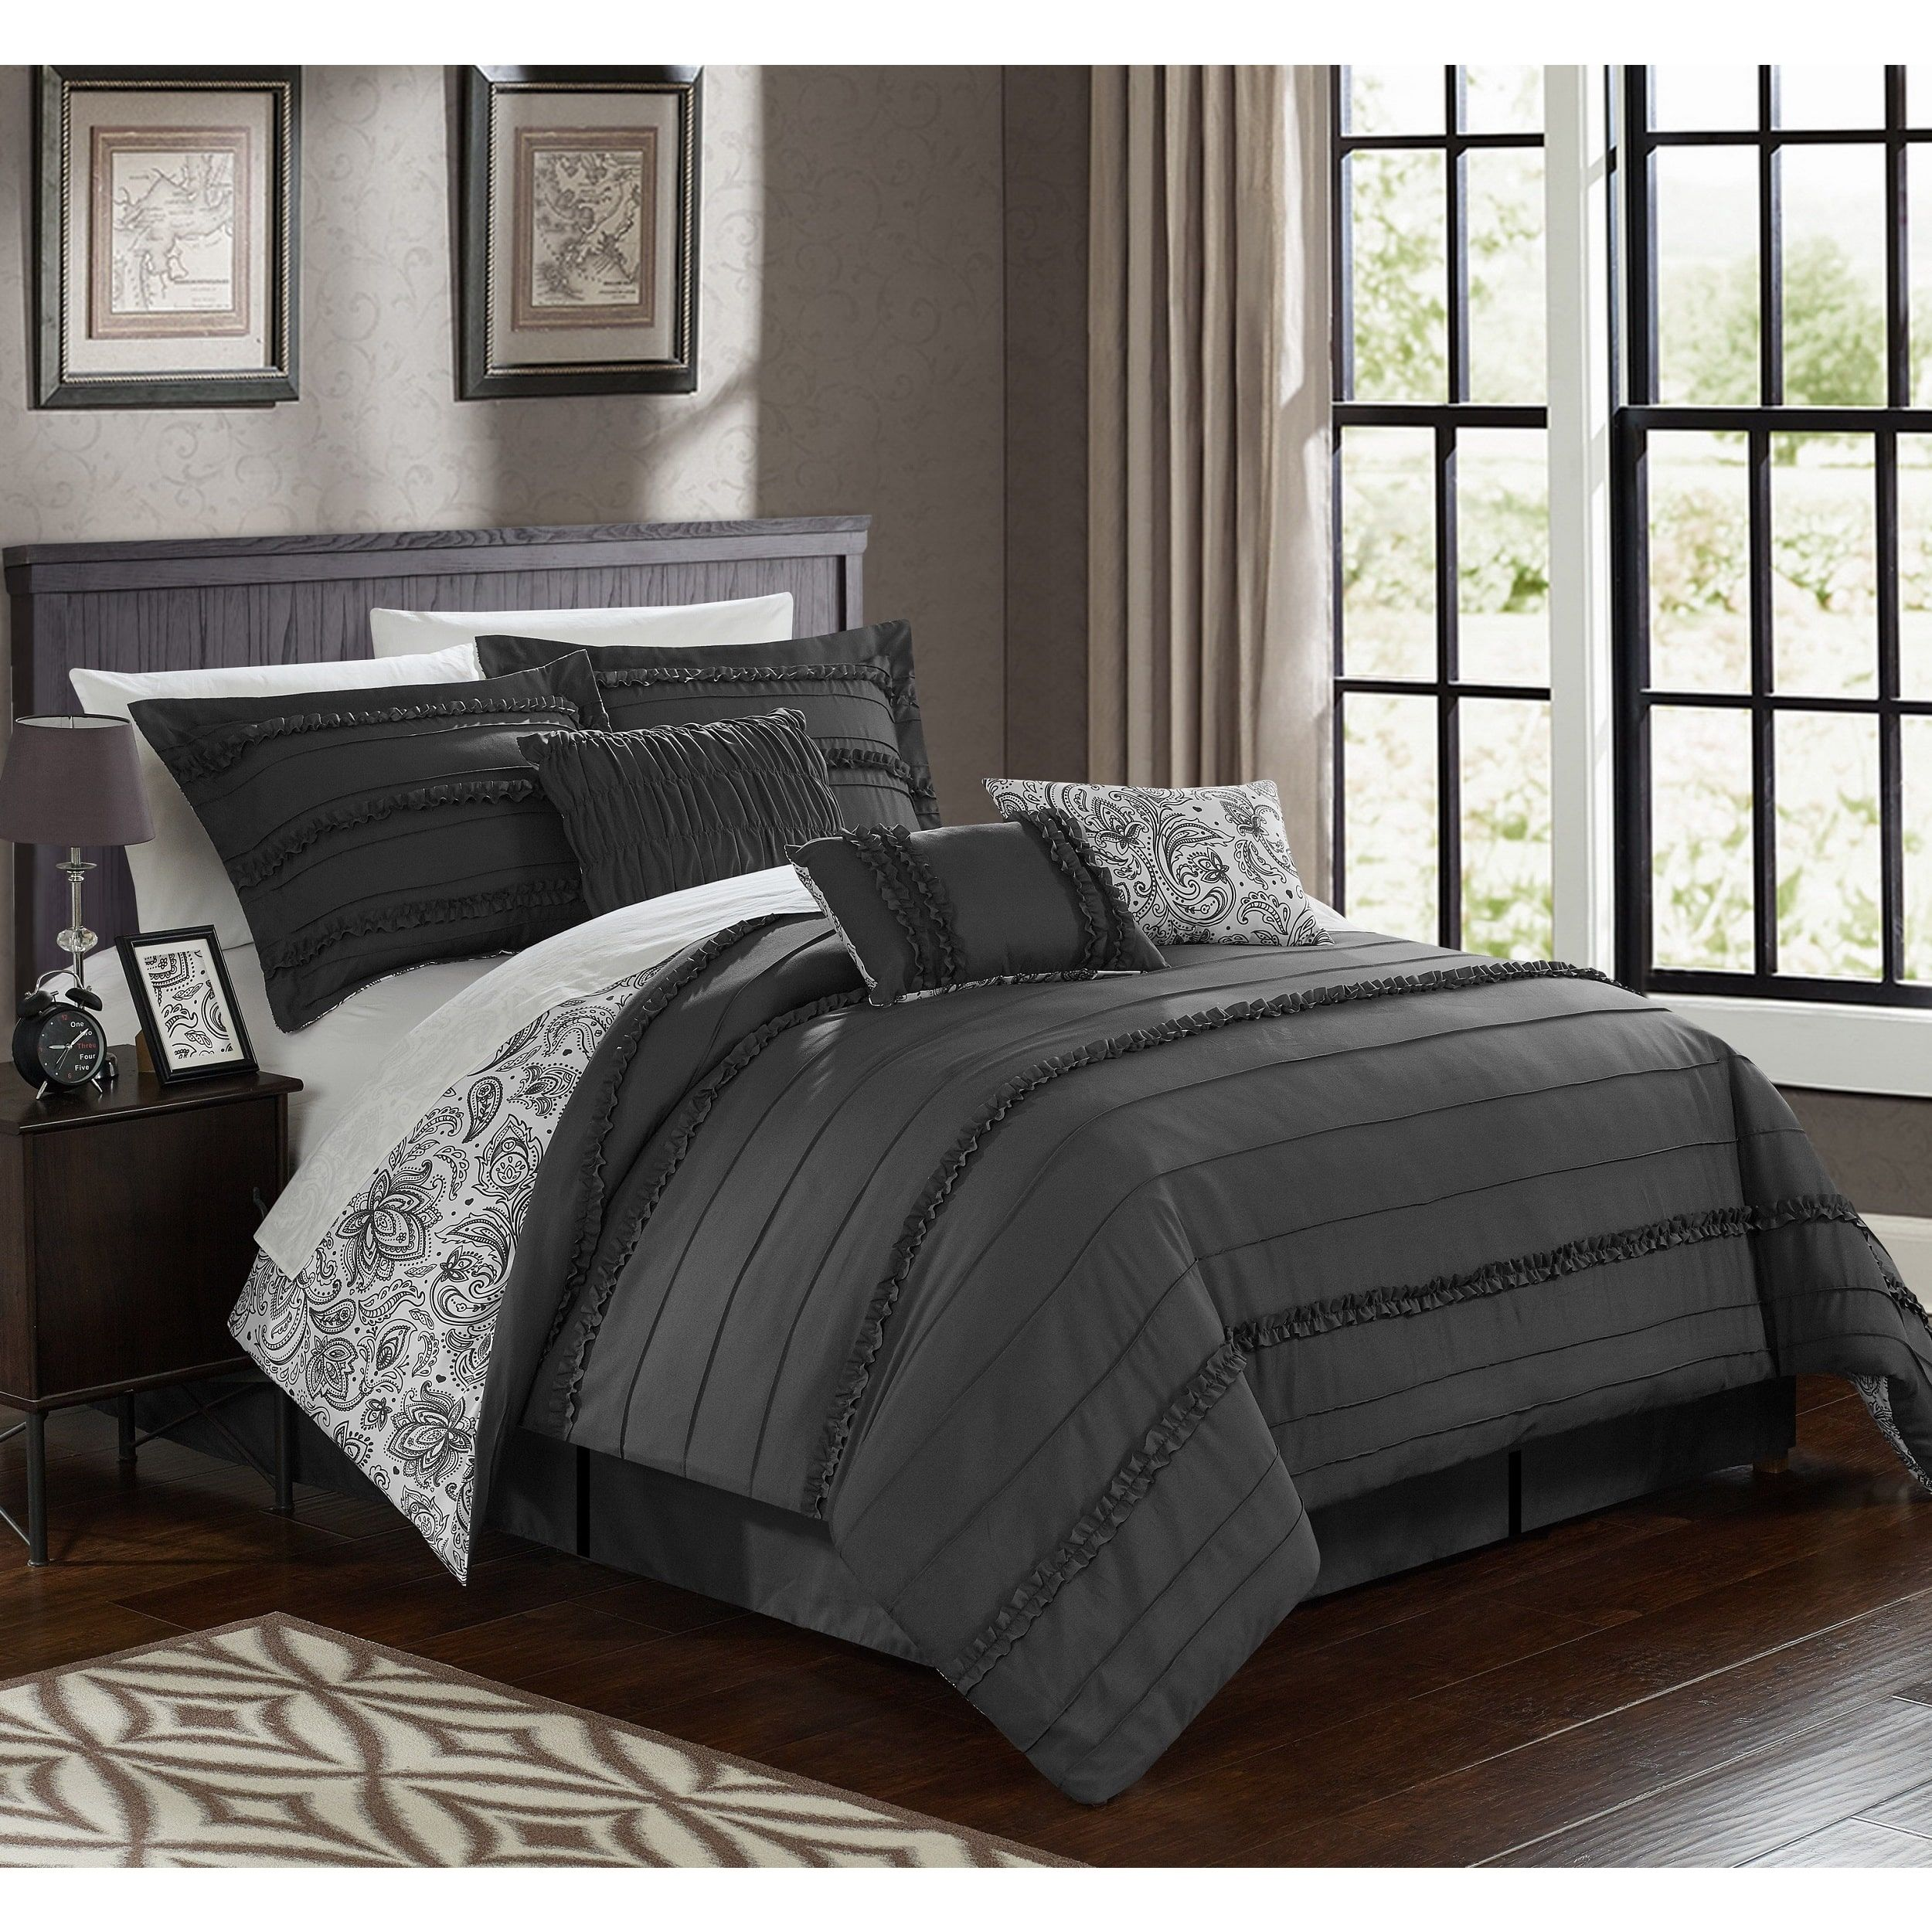 cool full twin queen discount nice cheap sets black comforter zebra comforters blanket grey bedding bed set for bedroom